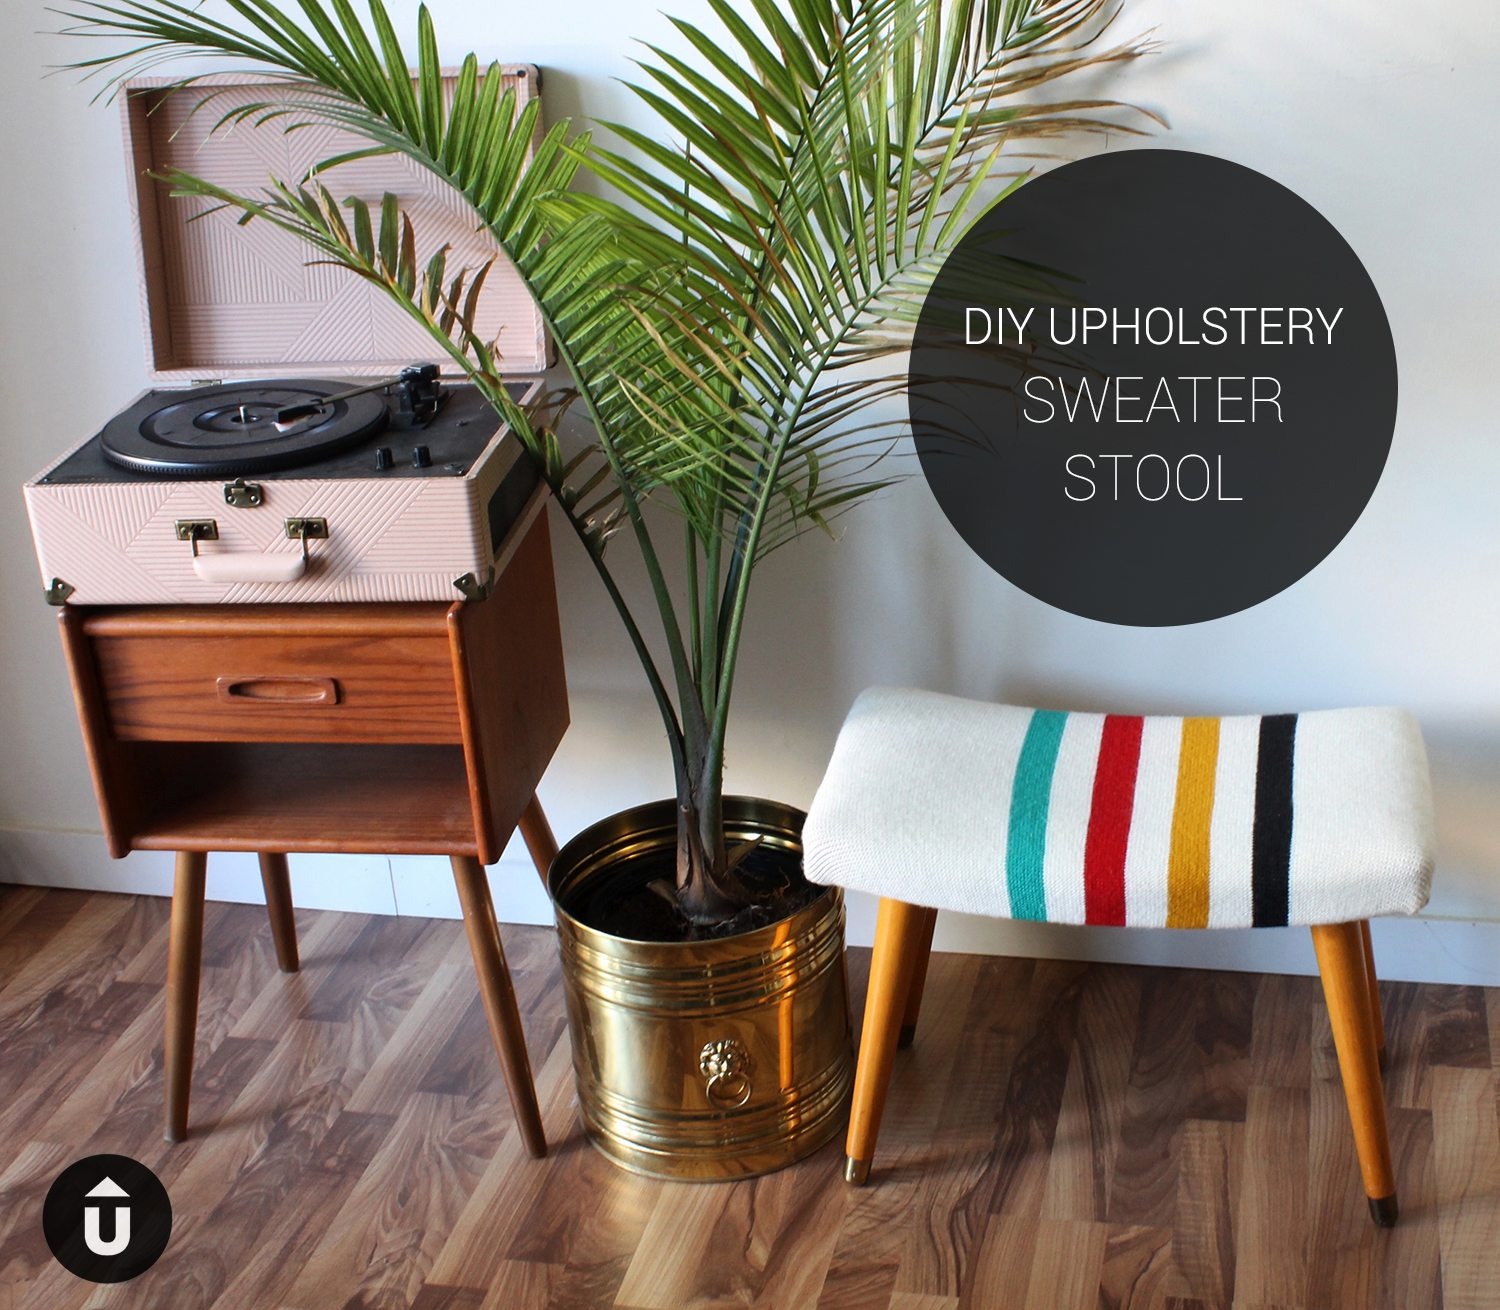 Sweater Stool Upholstery DIY